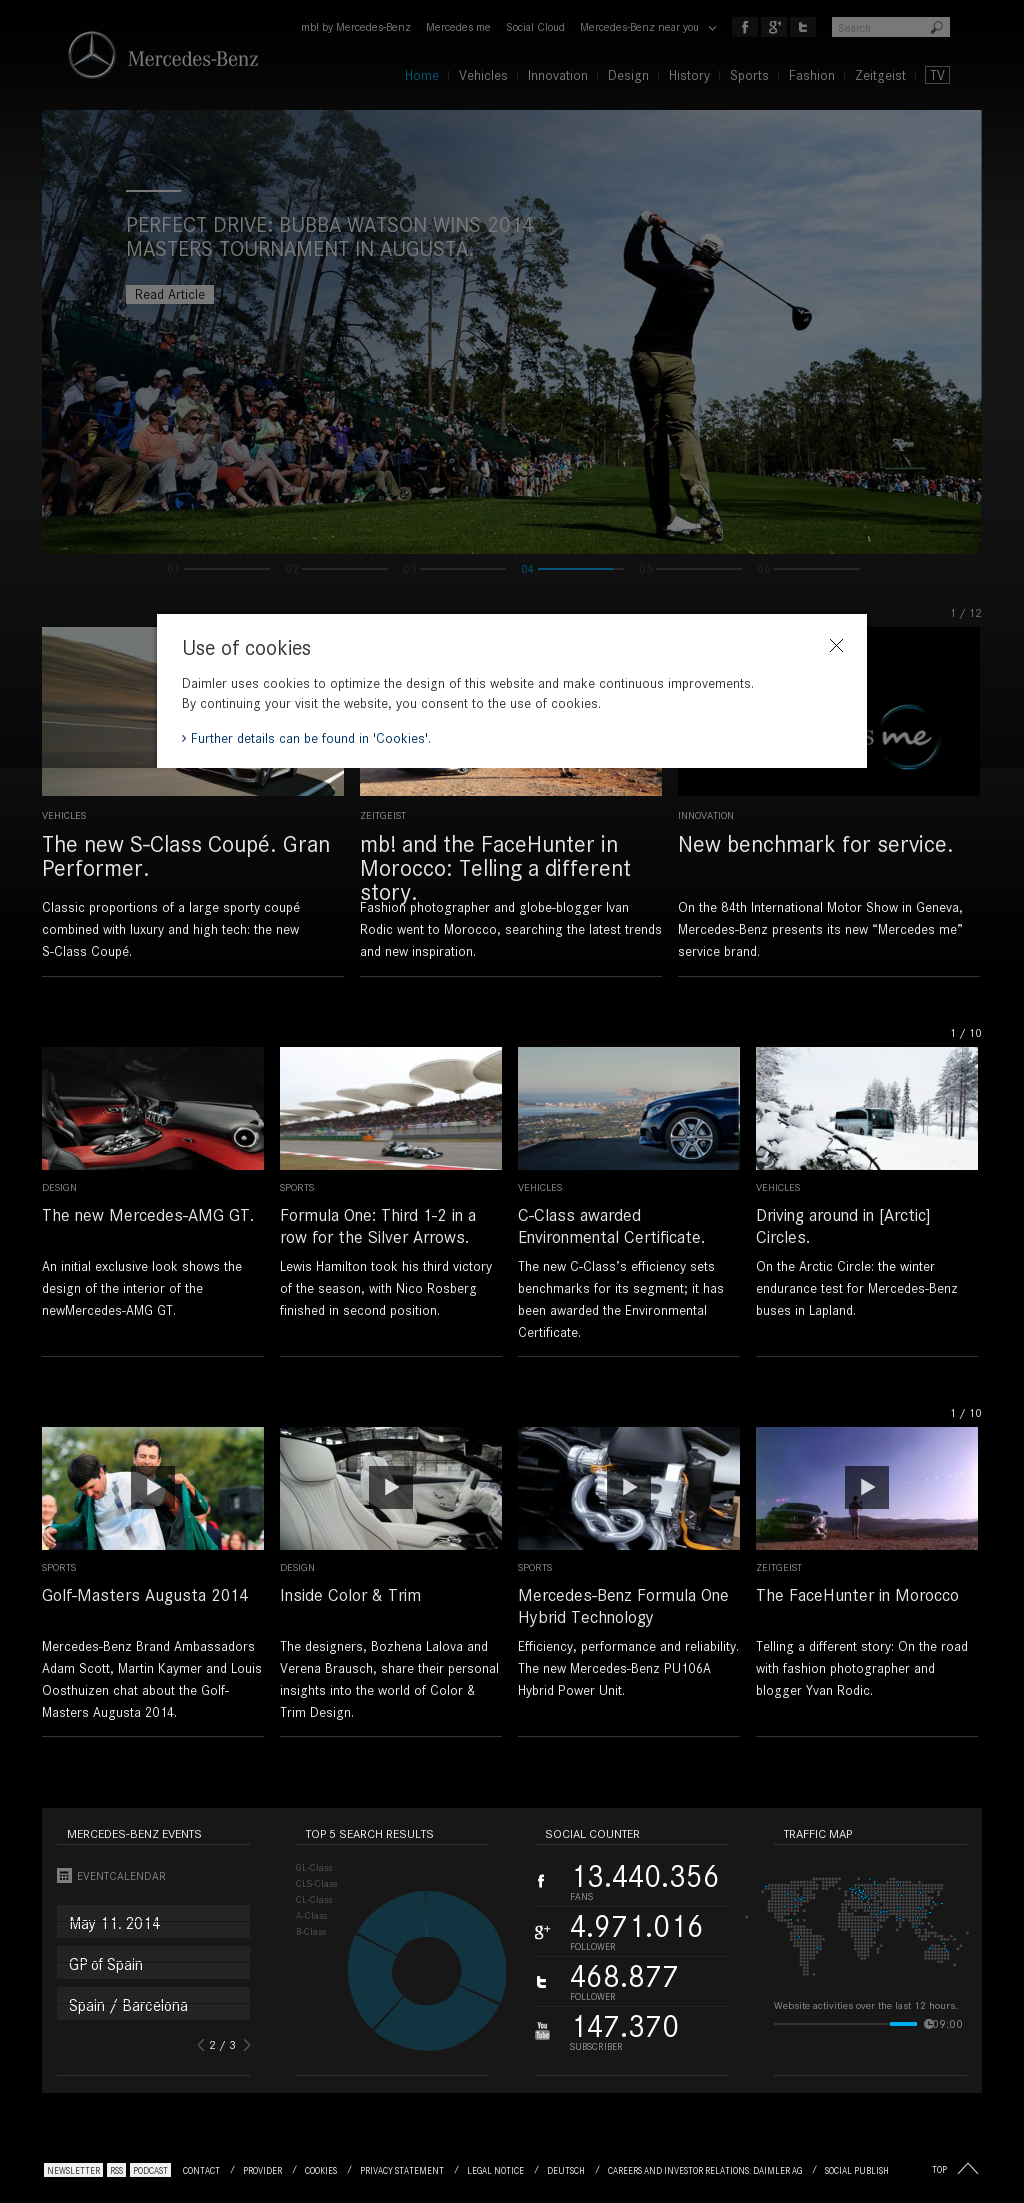 Mercedes benz company profile owler for Mercedes benz company history